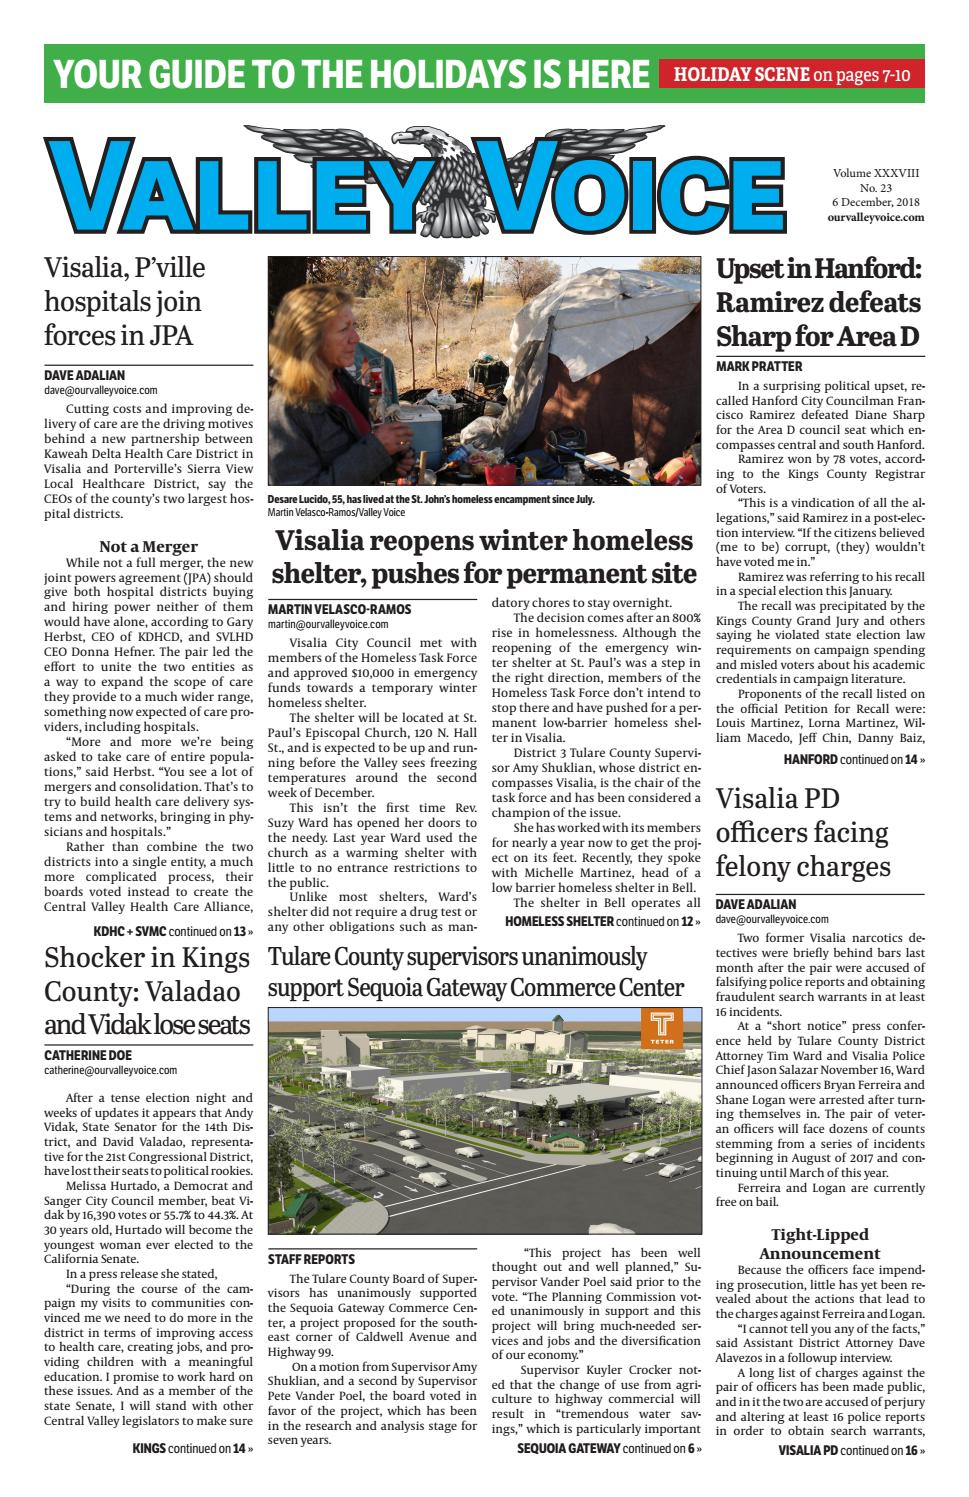 Valley Voice Issue 130 (6 December, 2018) by Valley Voice - issuu